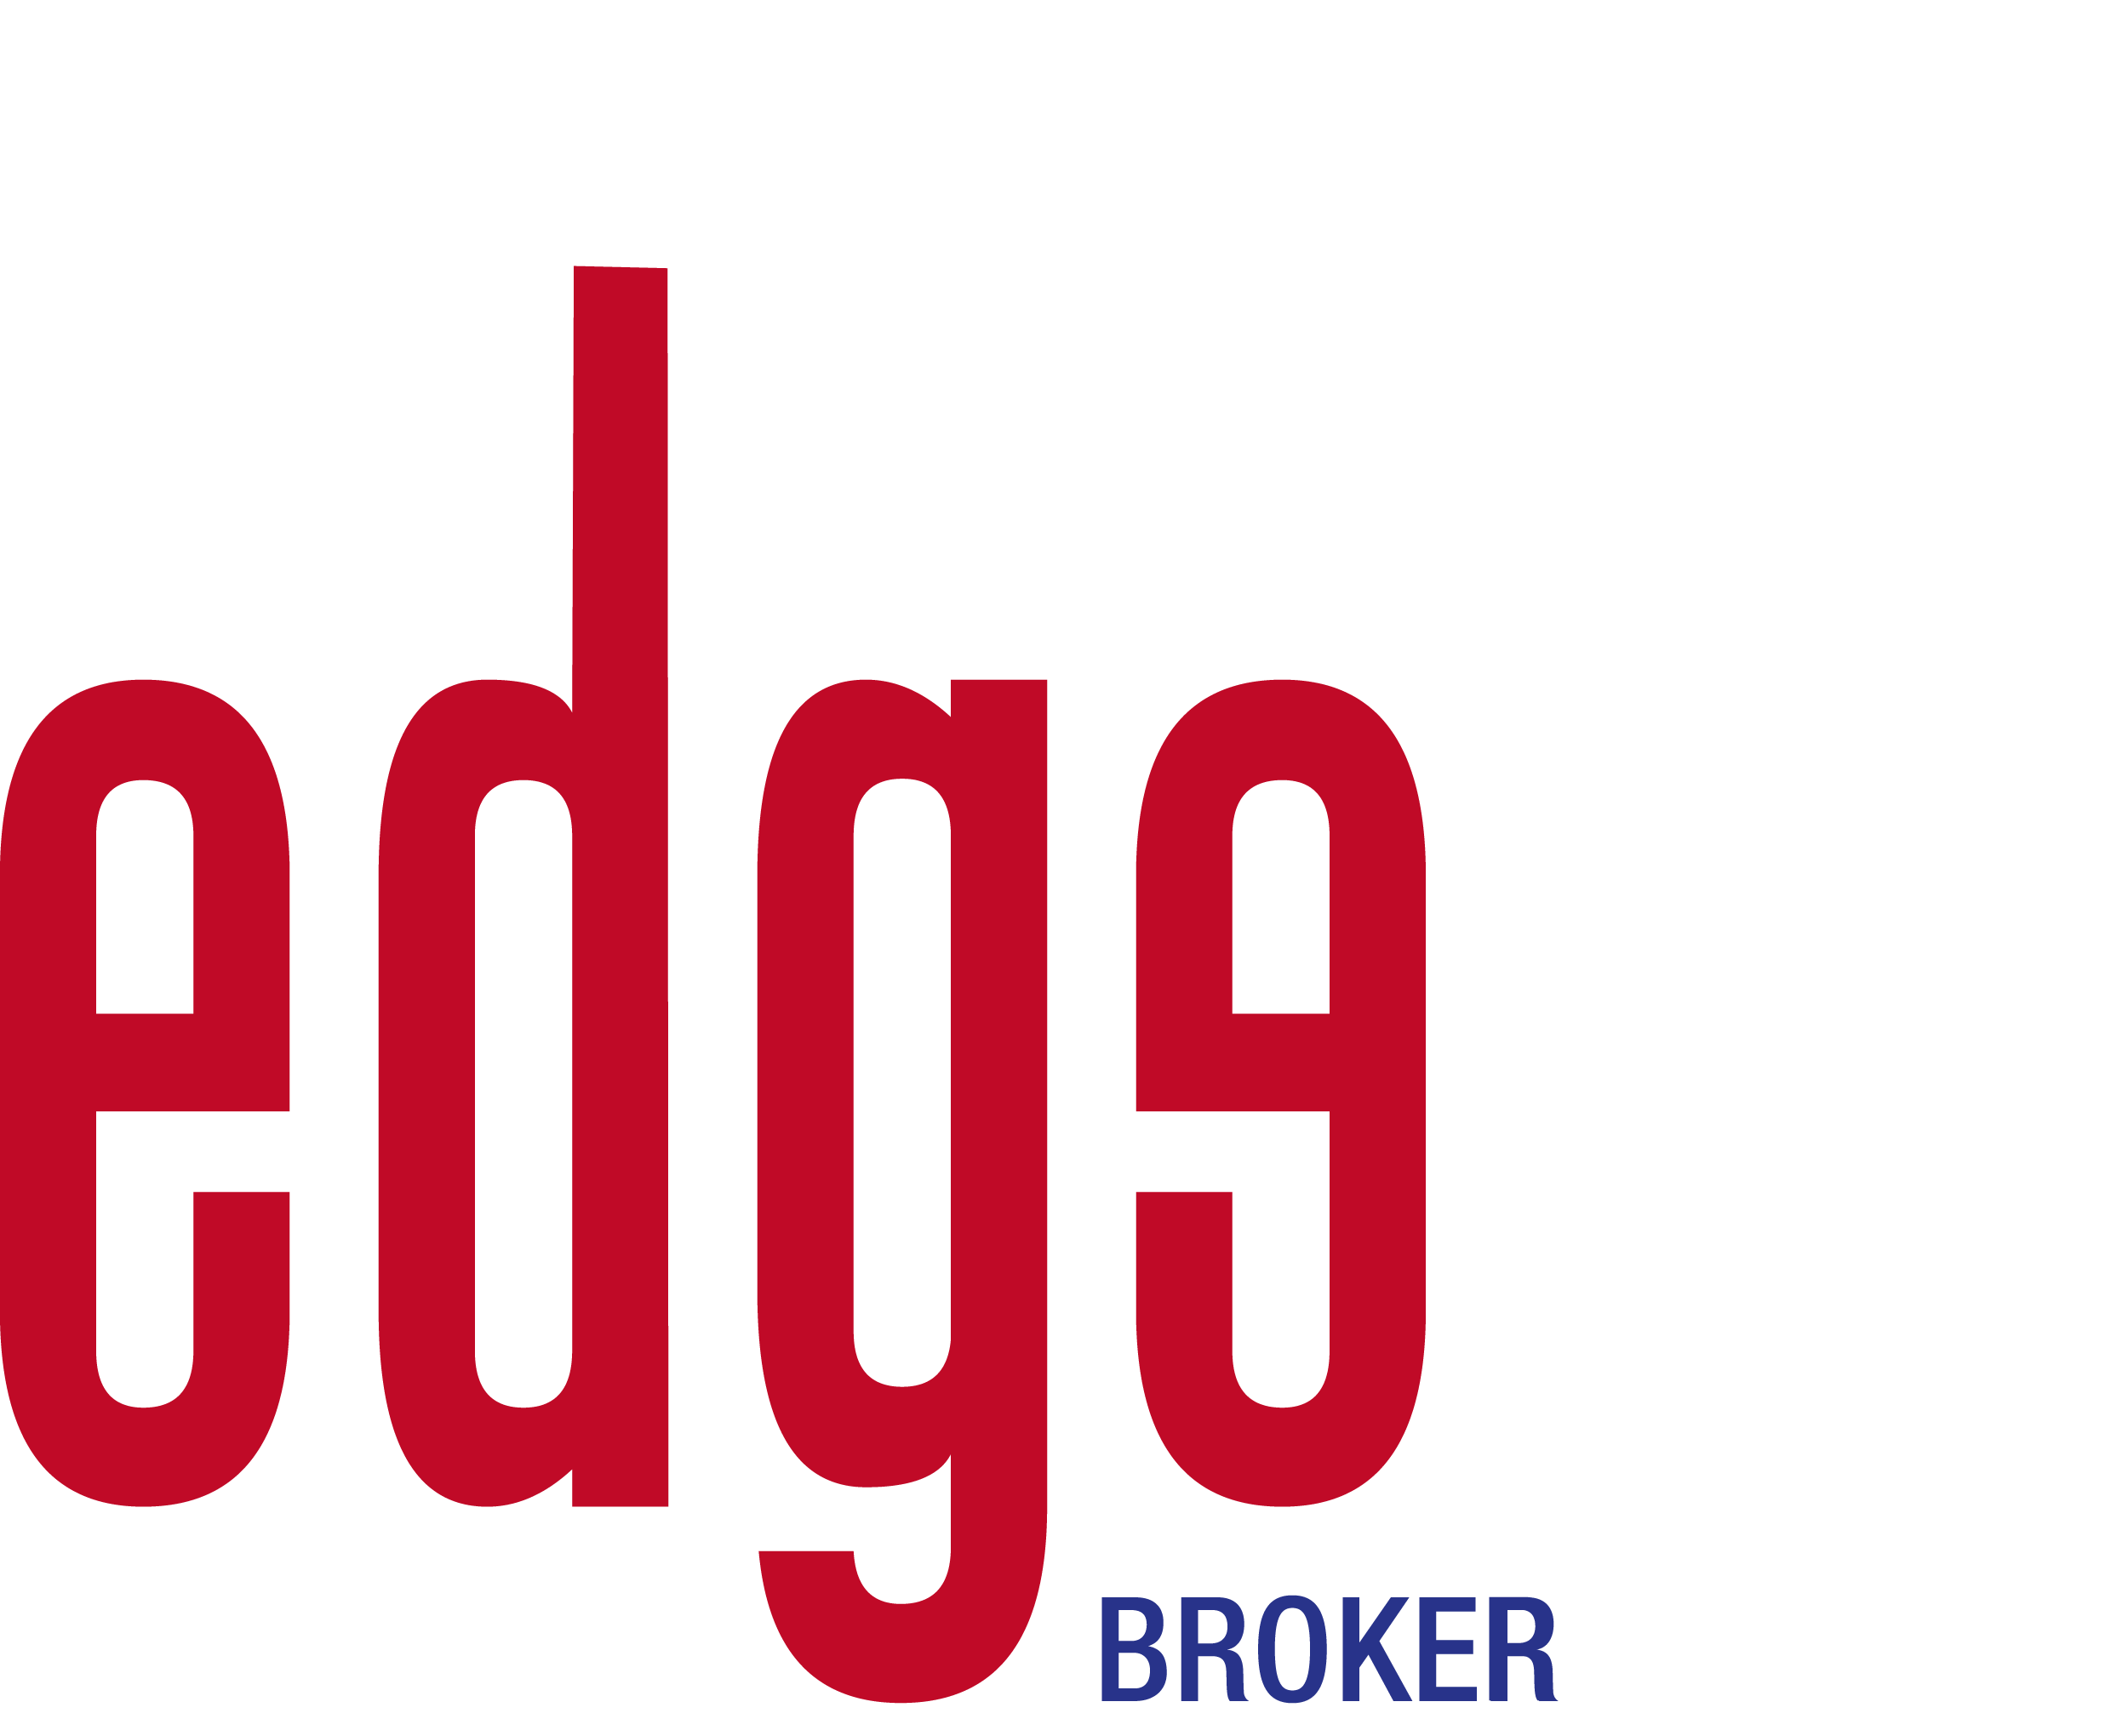 logo-edge-broker